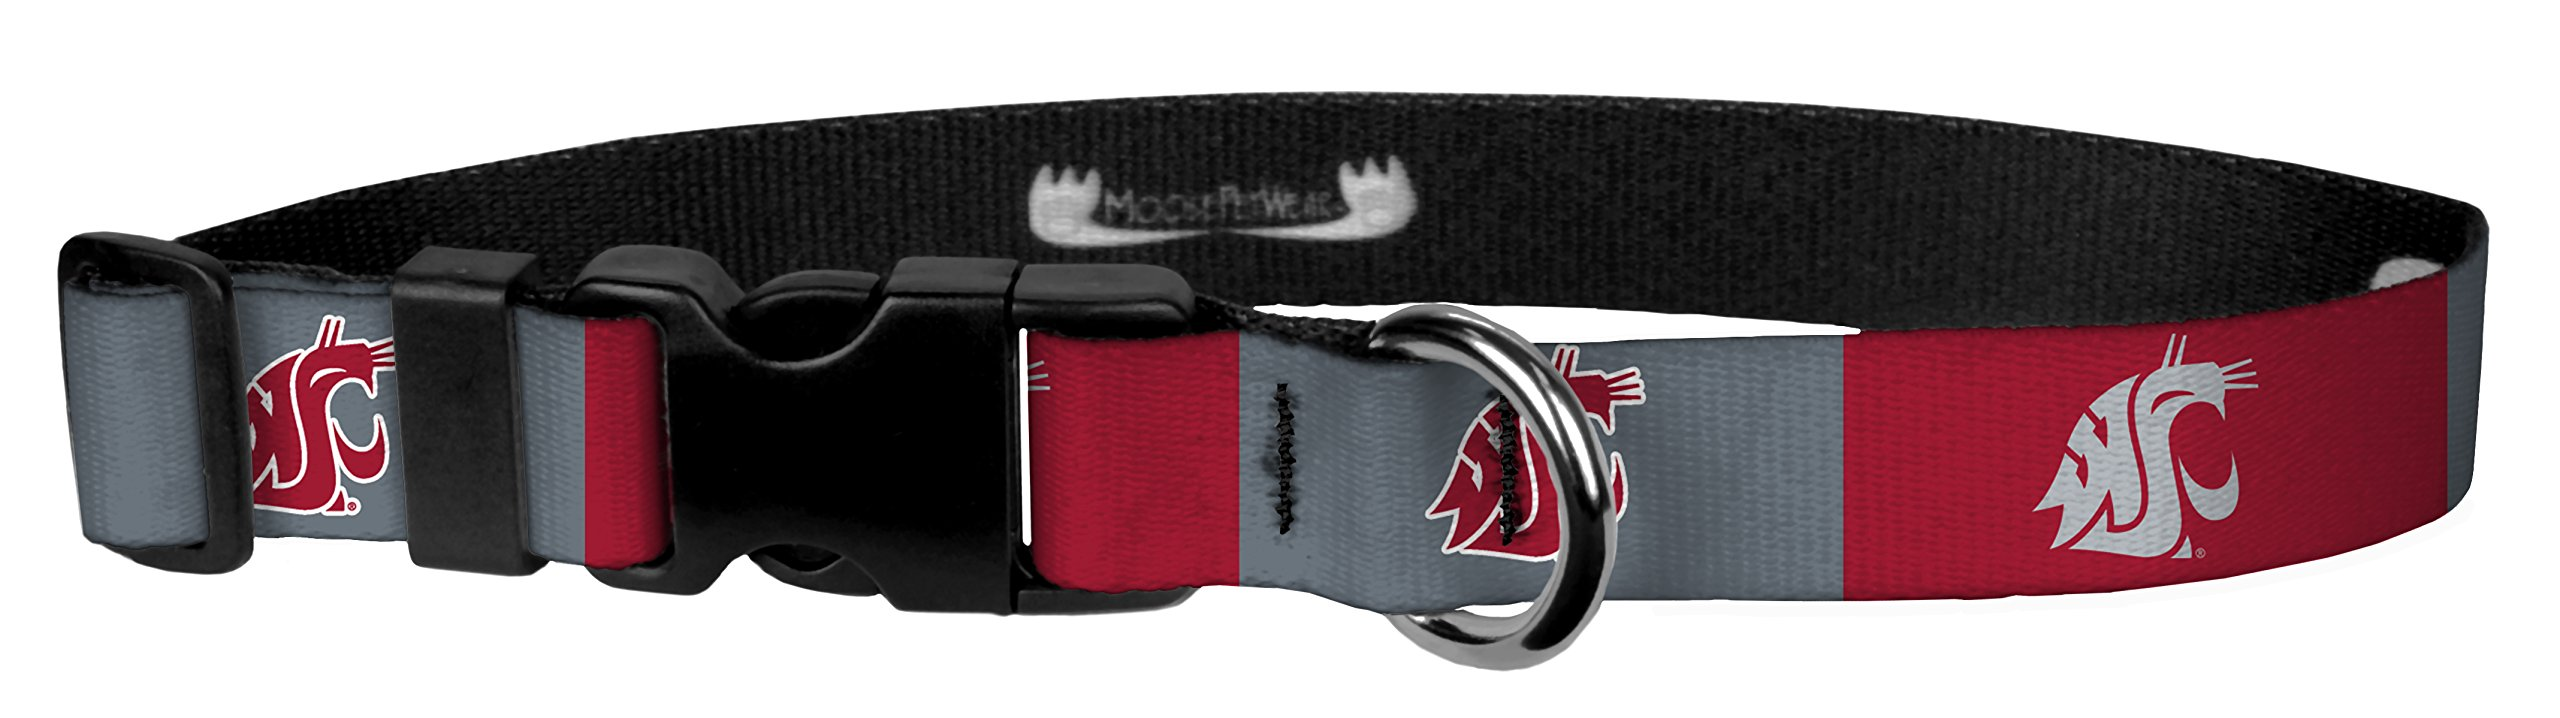 Moose Pet Wear Dog Collar - Washington State University Cougars Adjustable Pet Collars, Made in The USA - 1 Inch Wide, Large, Red/Gray Box Logo by Moose Pet Wear